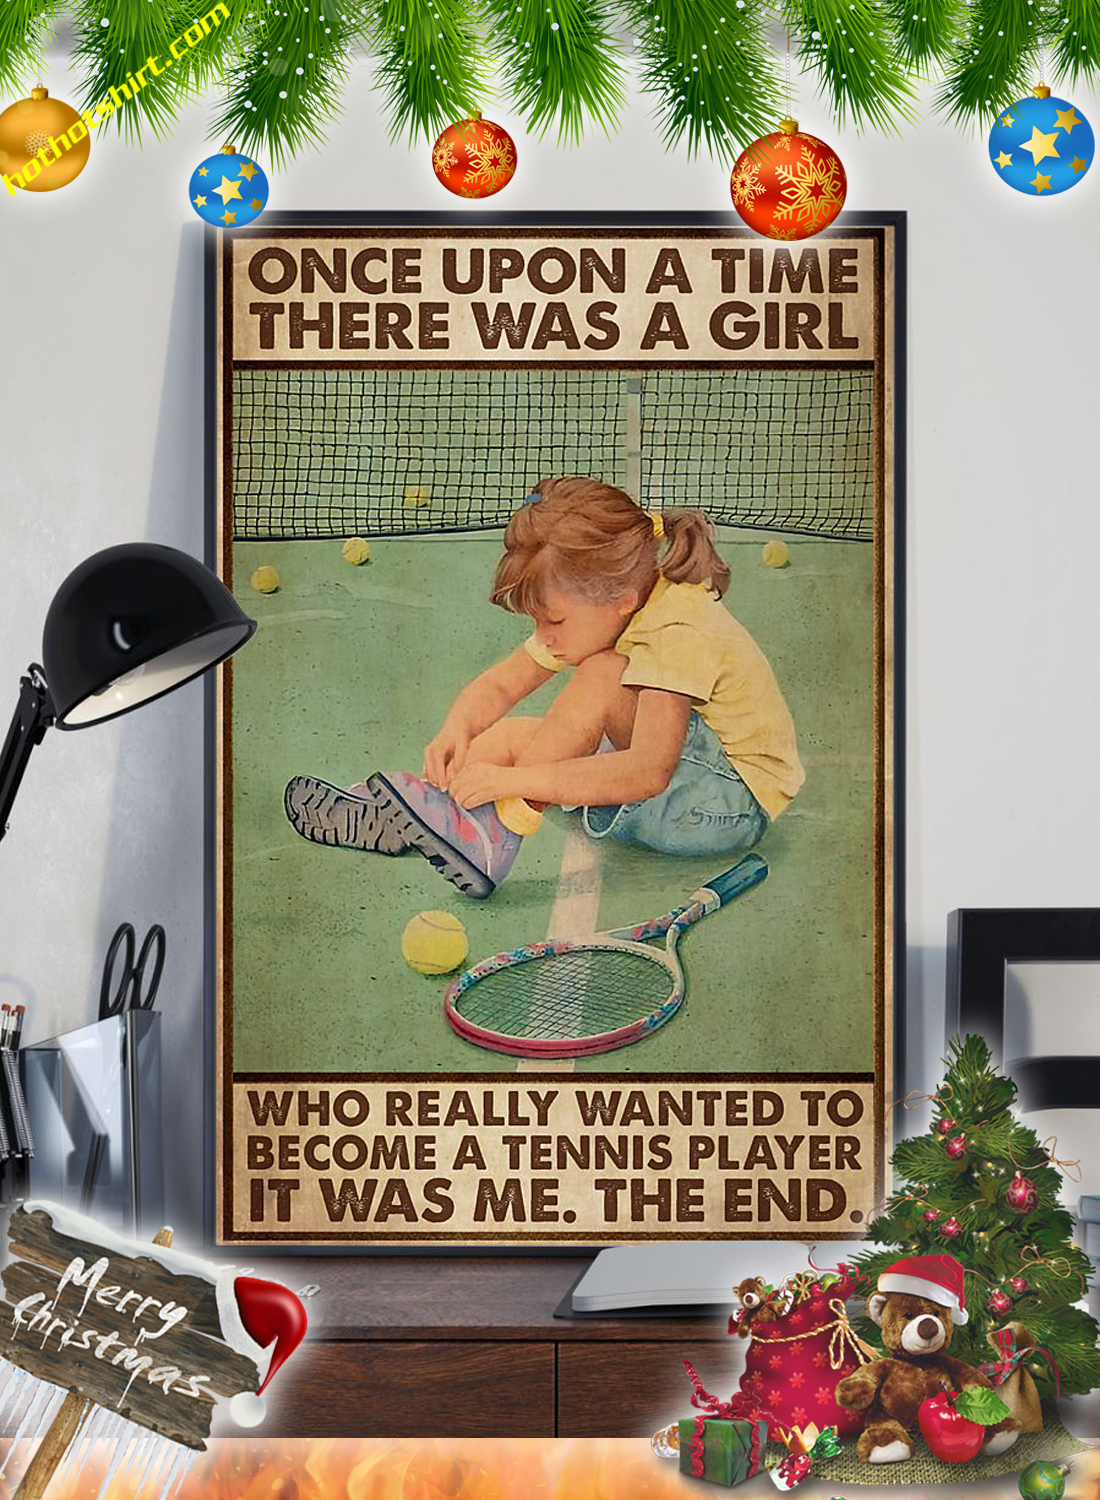 Once upon a time there was a girl who really wanted to become a tennis player poster 2